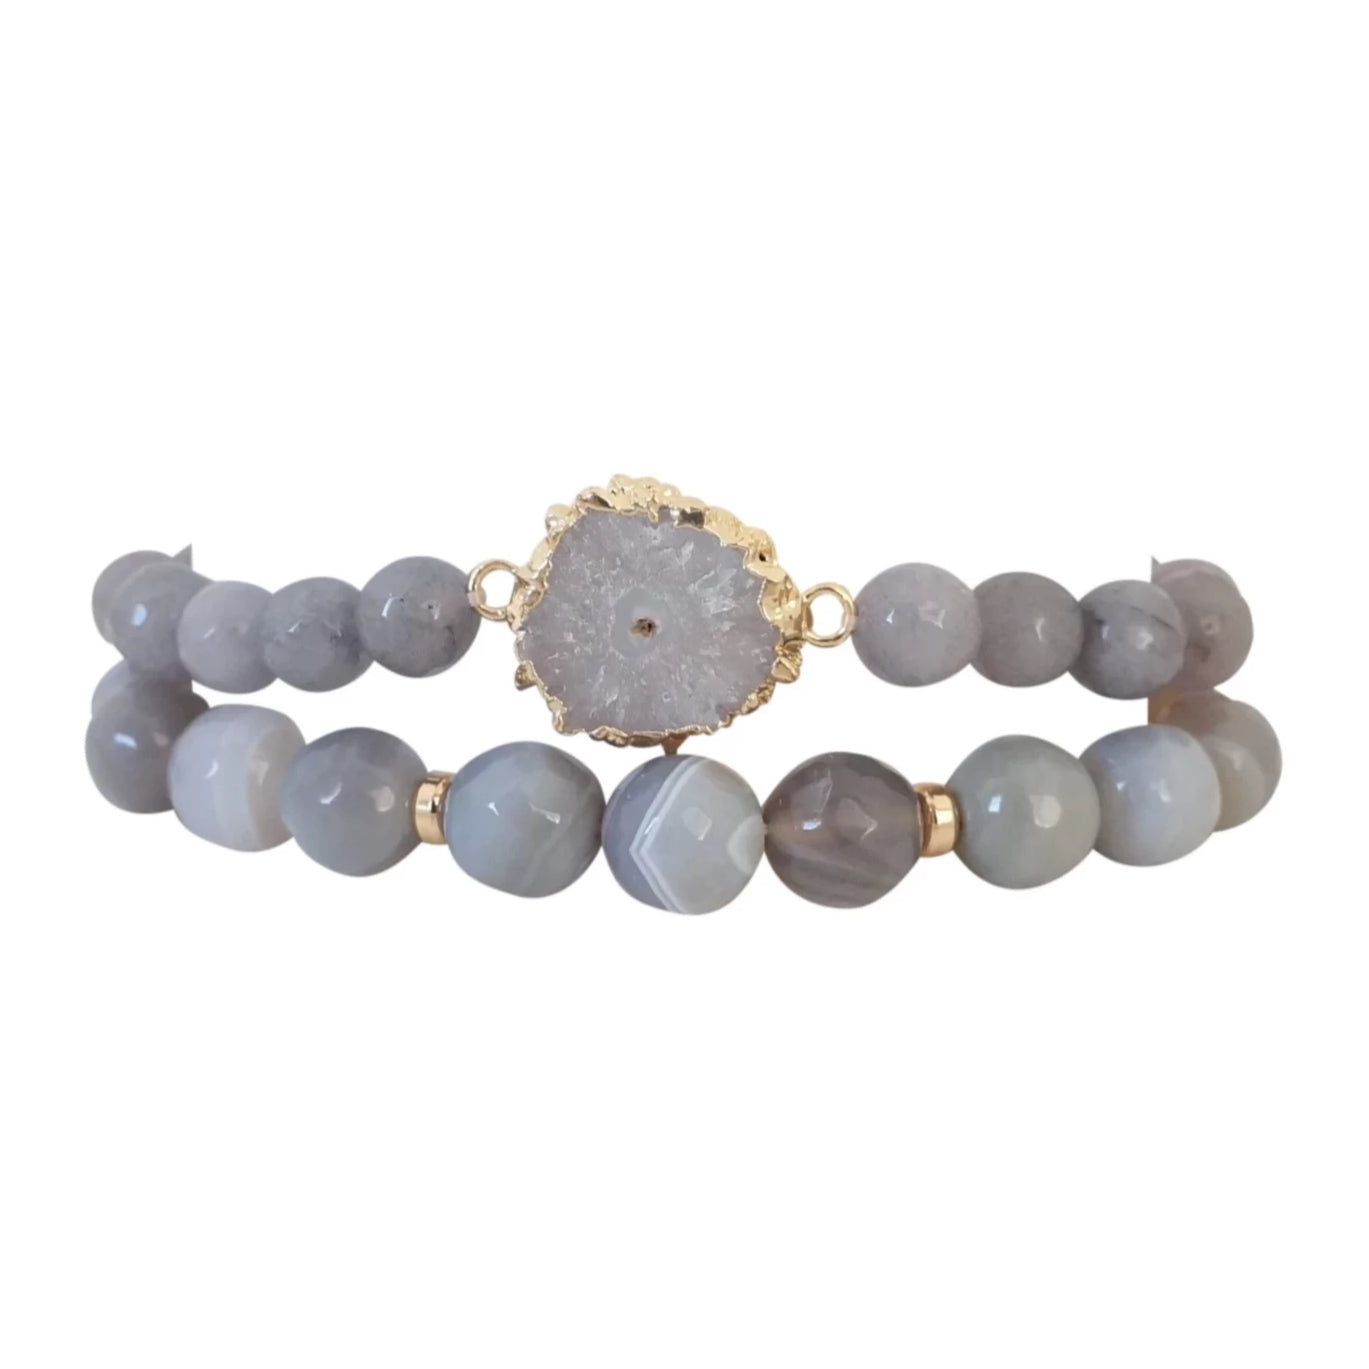 Tranquil Bracelet Stack - Carolyn Hearn Designs